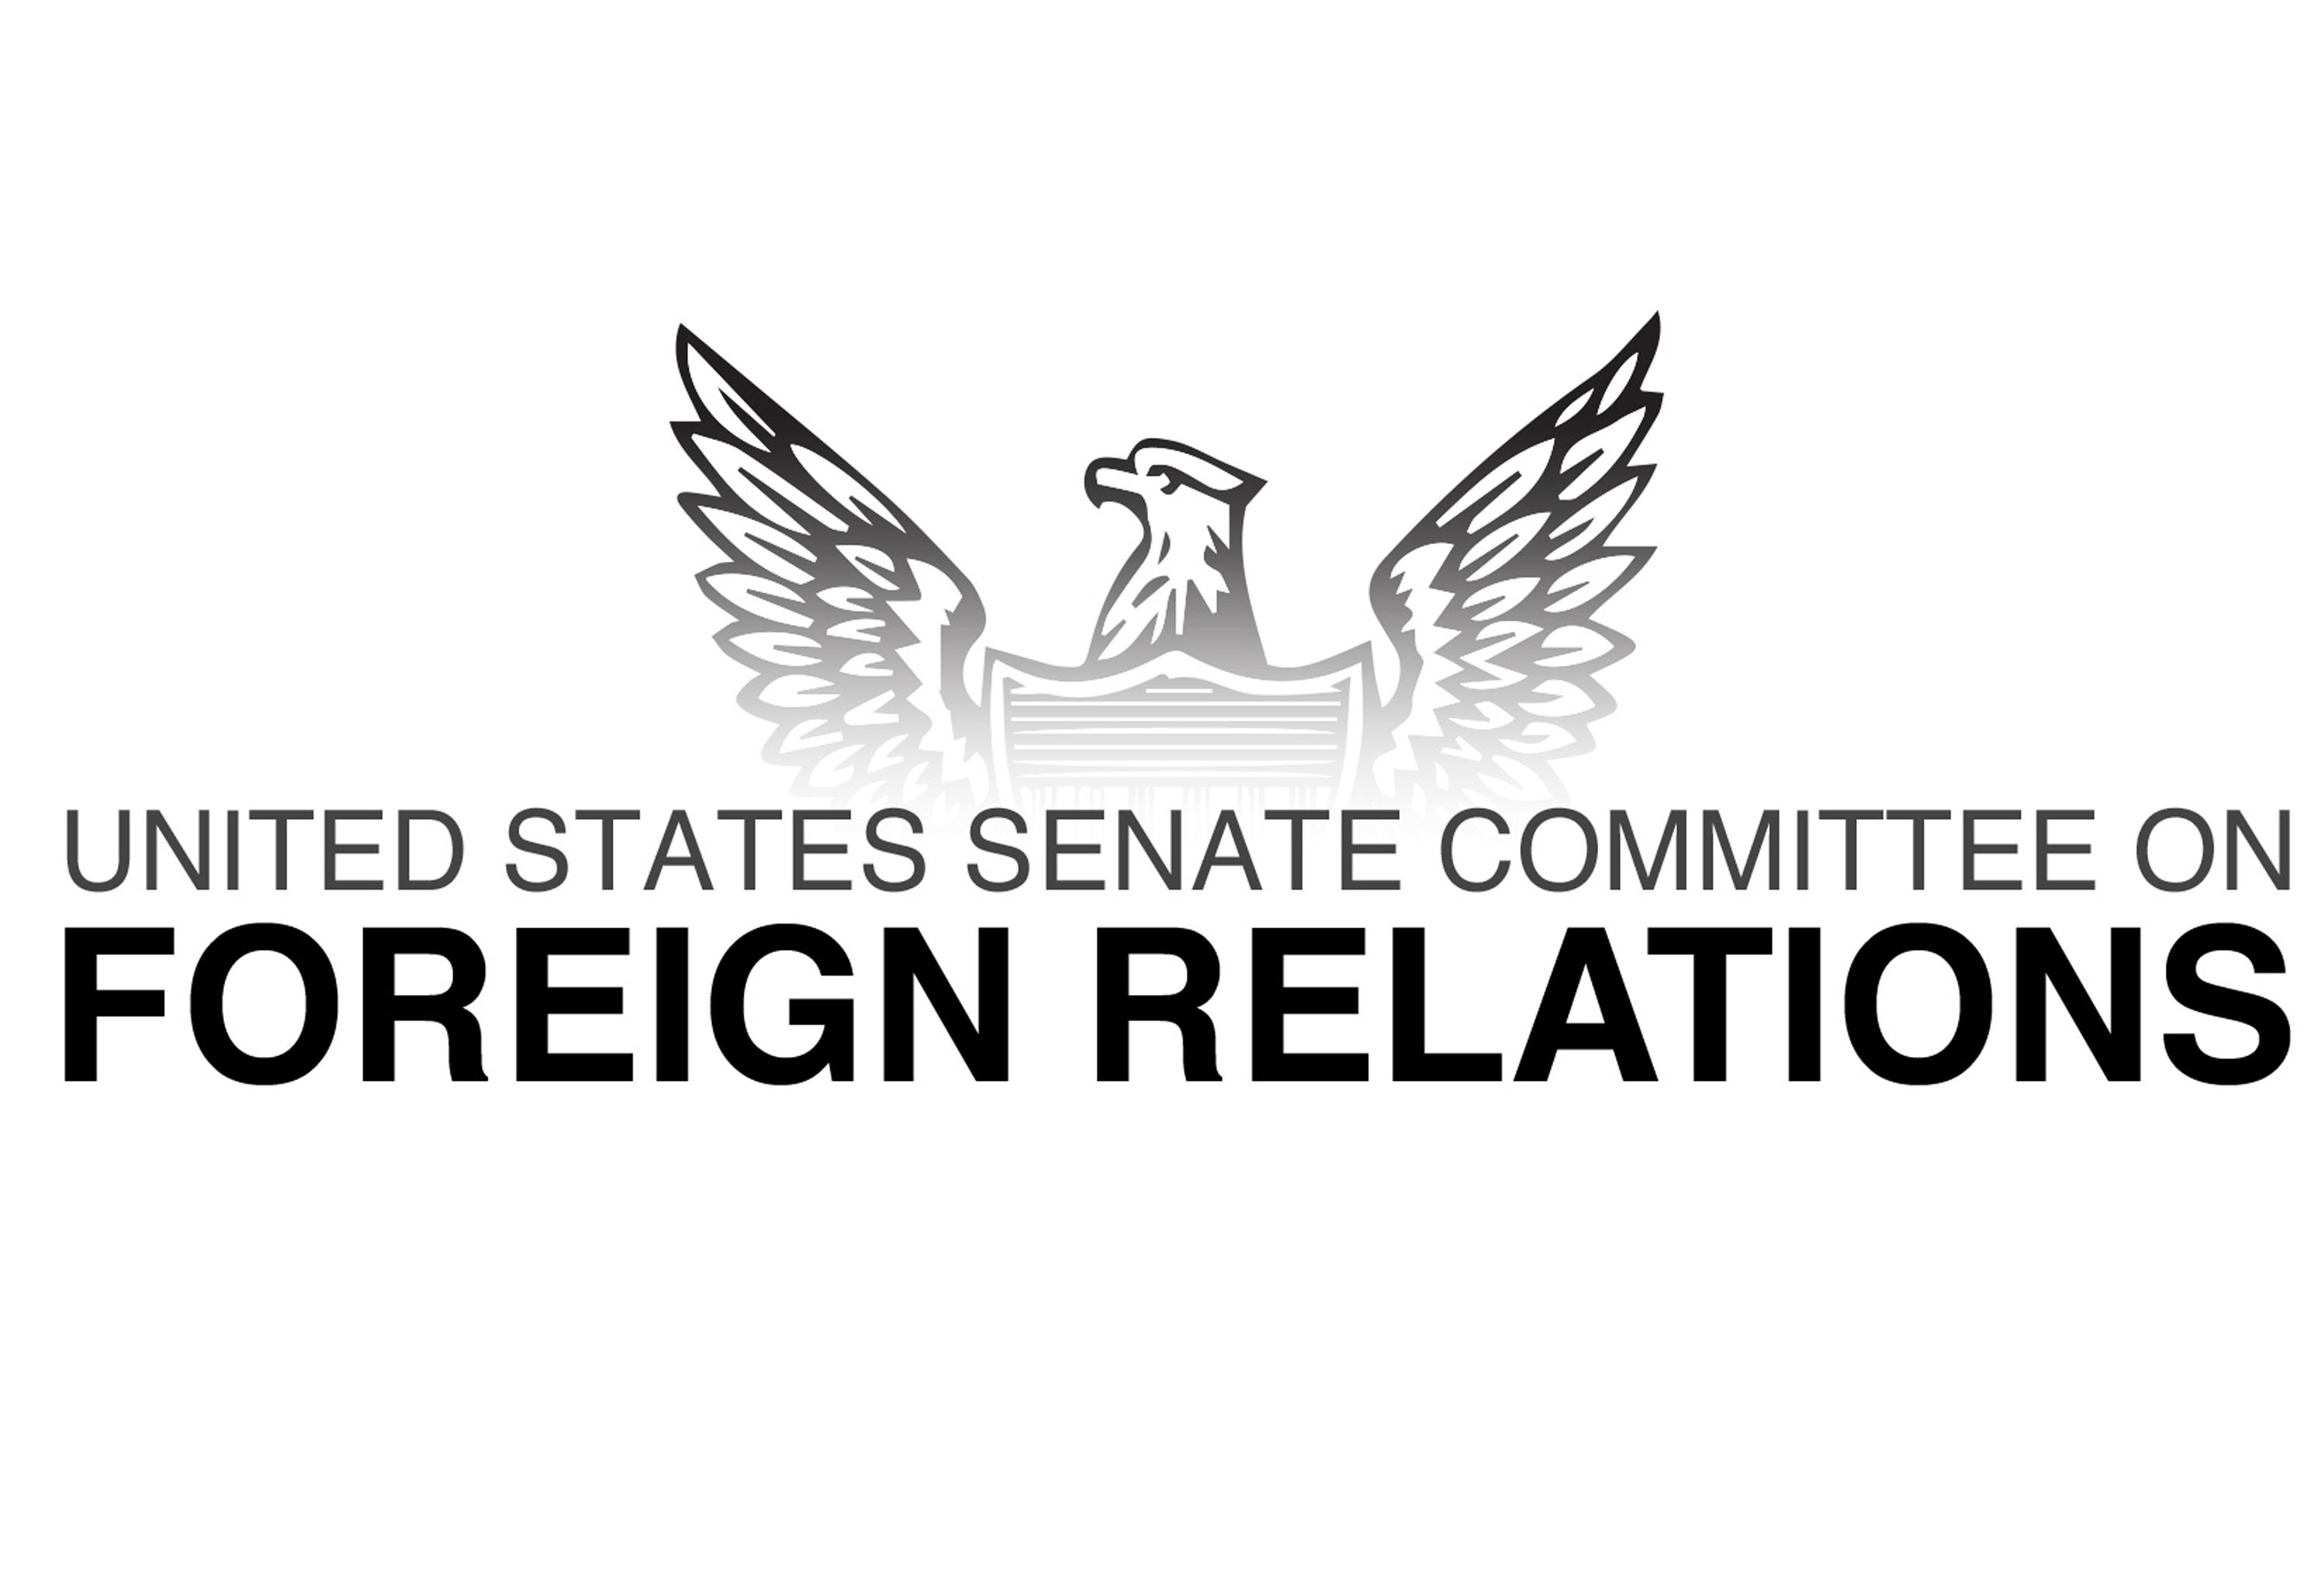 Senate Foreign Relations Committee